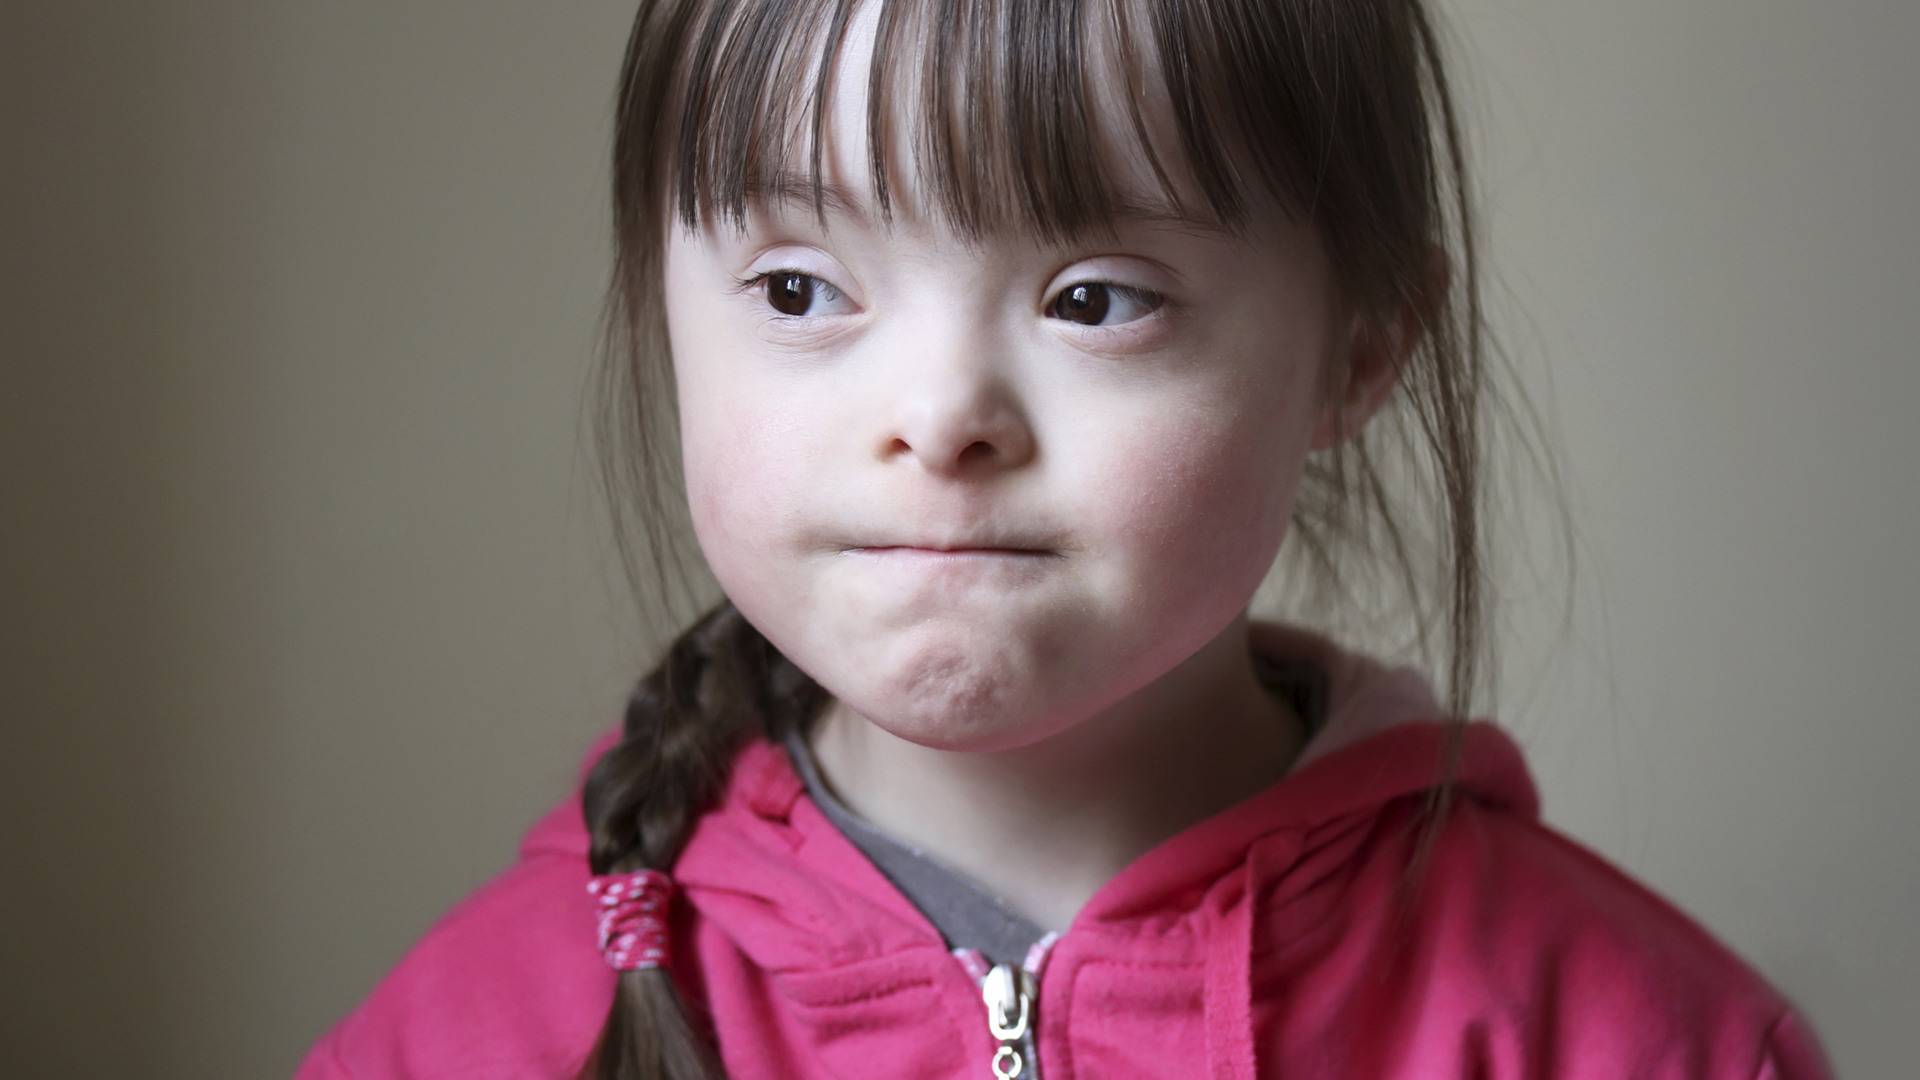 Pensive child with downs syndrome | Sheknows.com